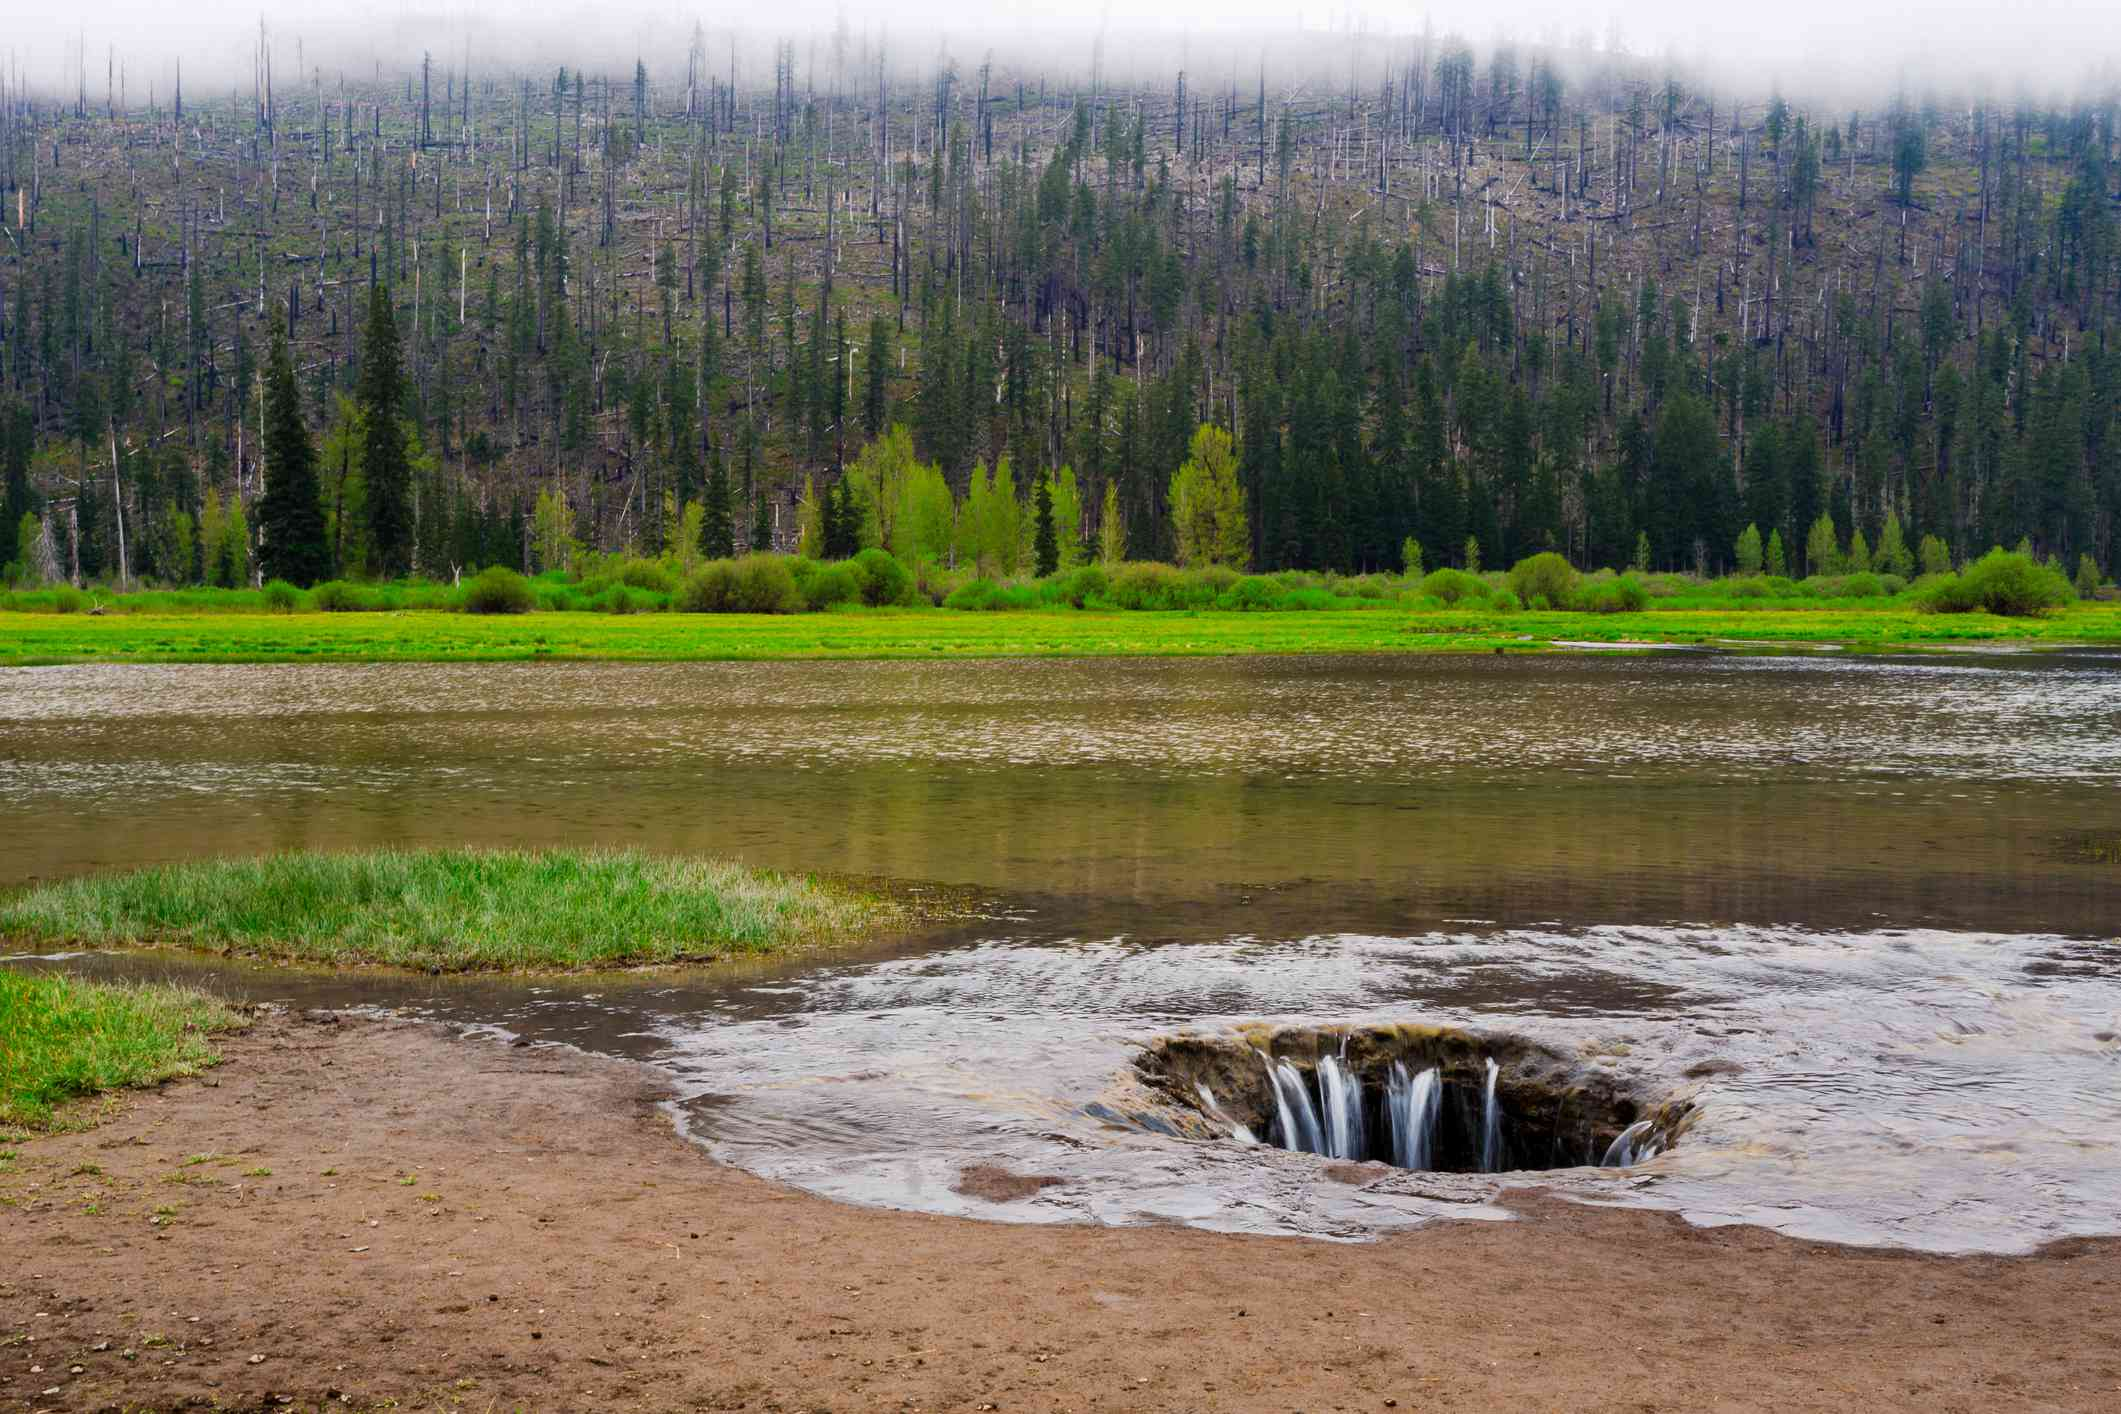 Water in a shallow lake drains into a sinkhole, revealing sandy ground